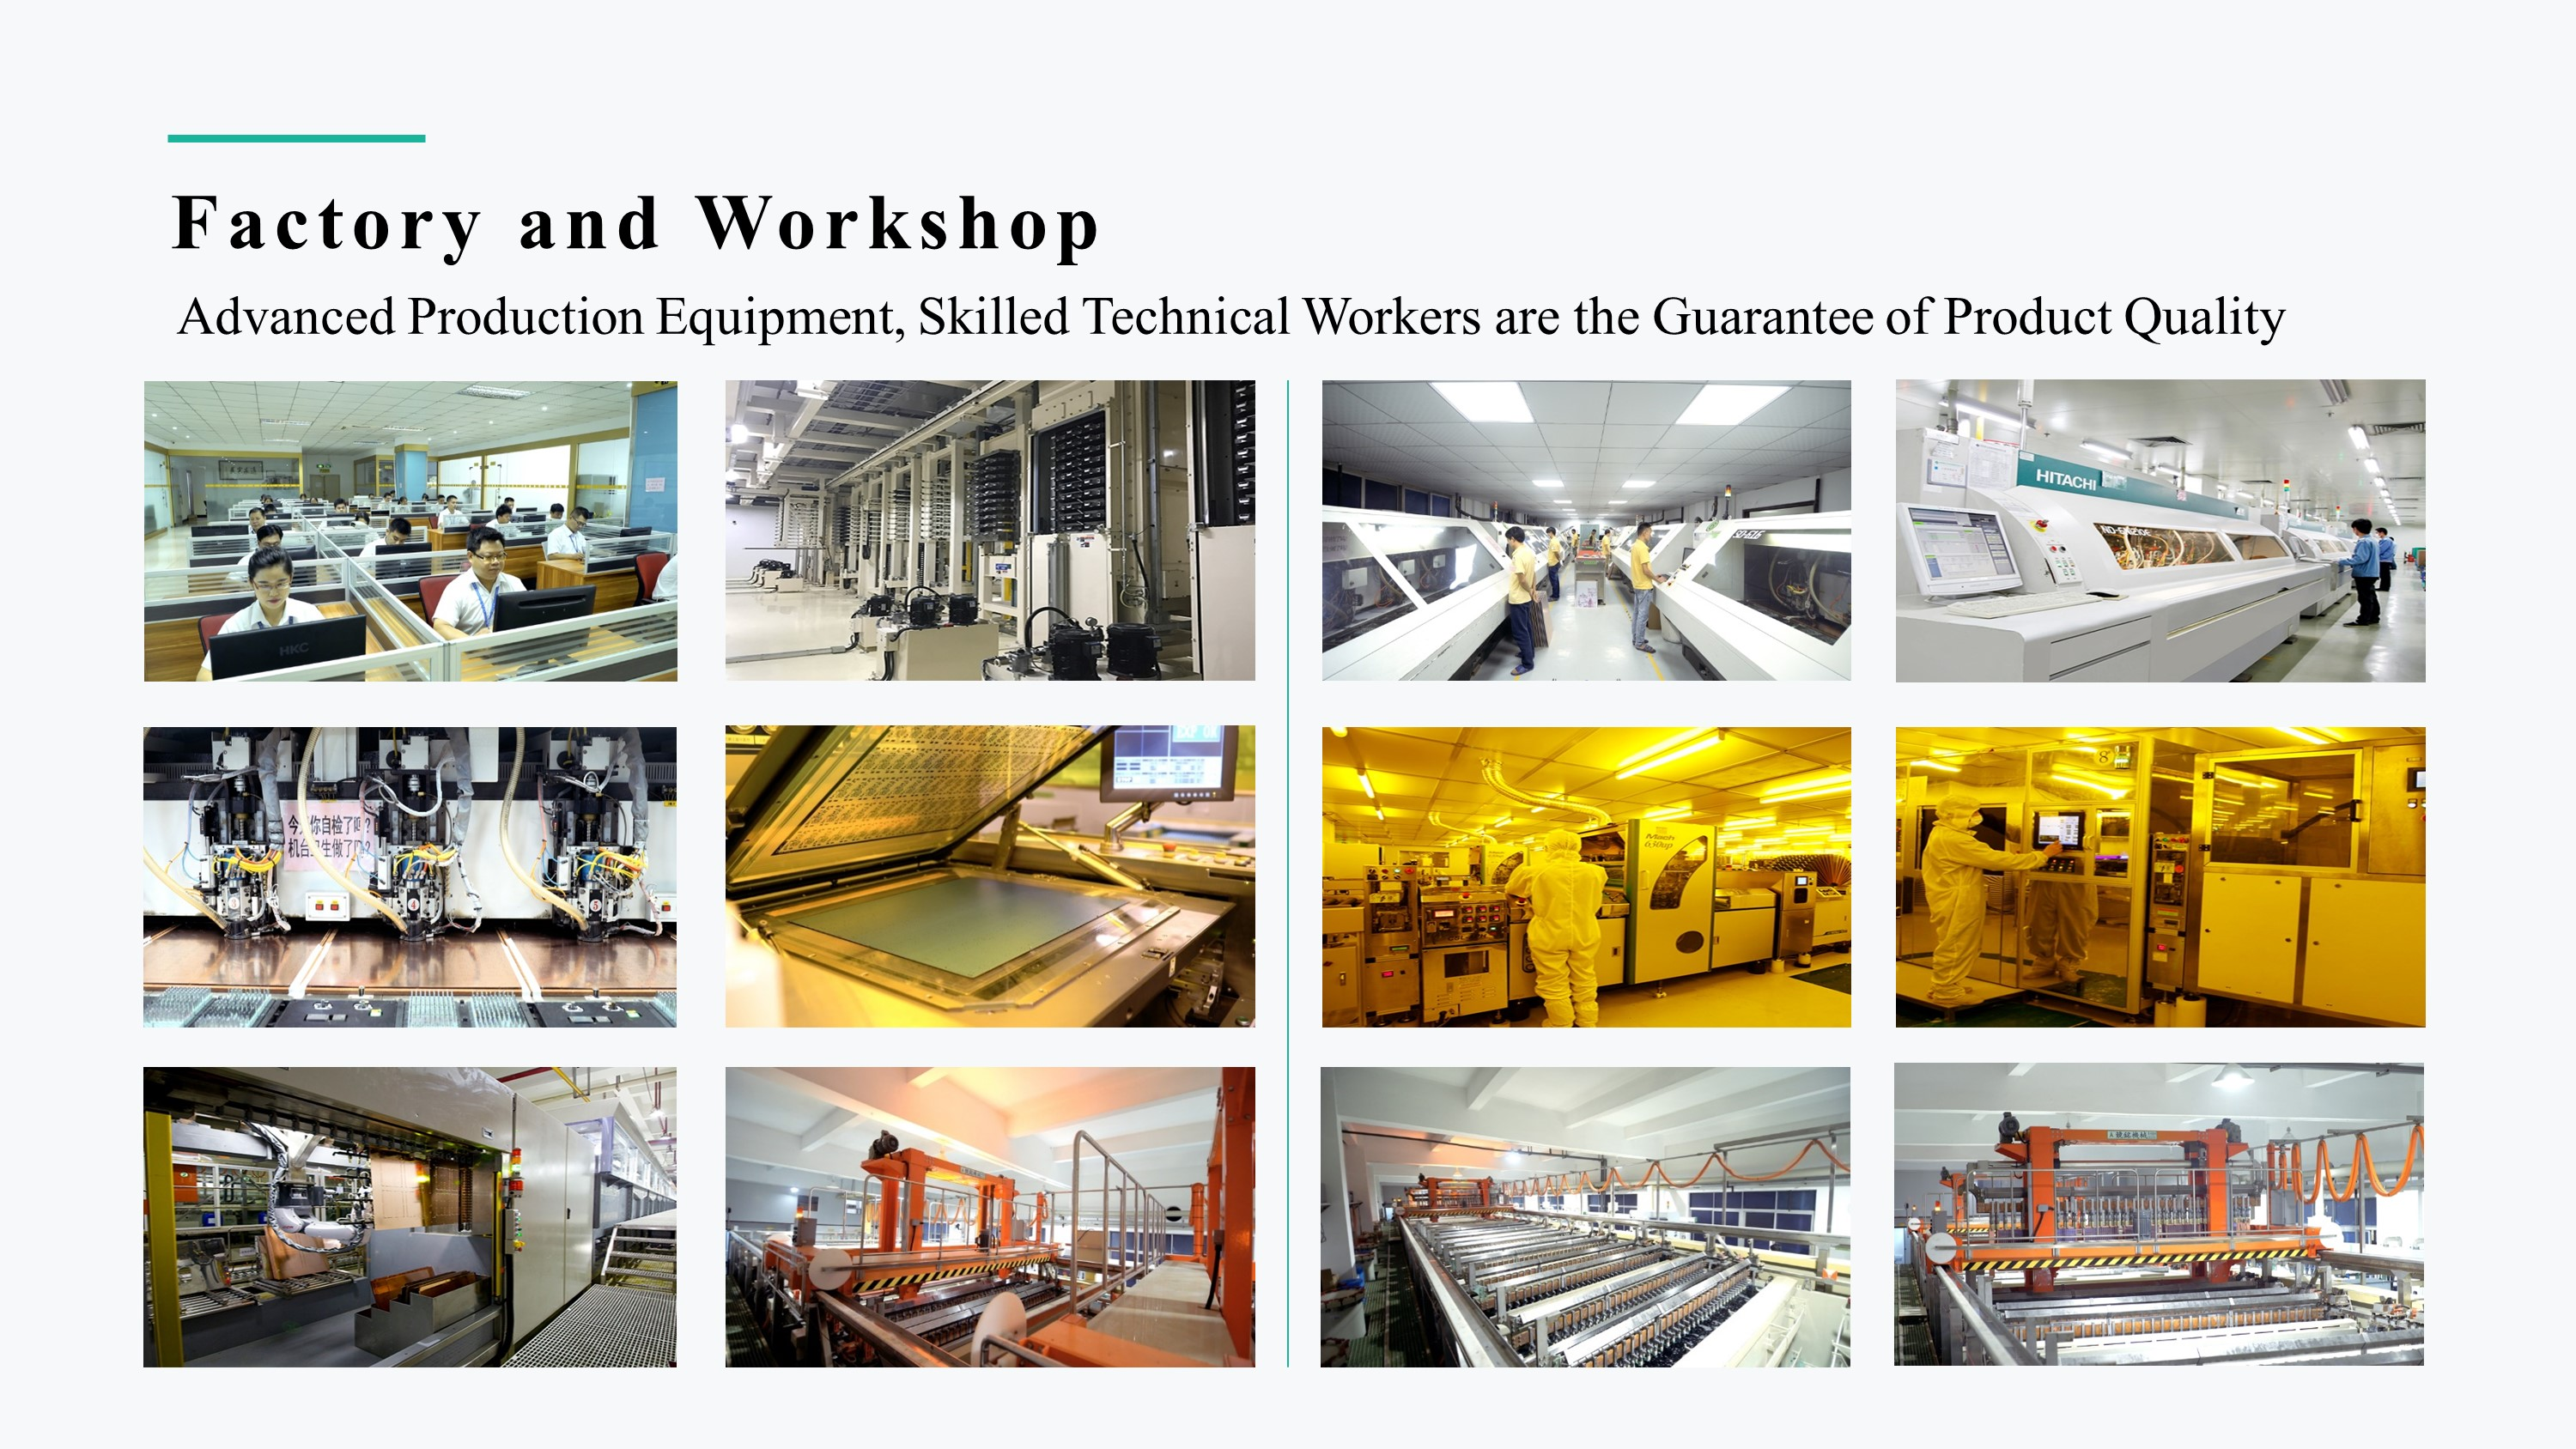 Advanced Production PCB Manufacturing Equipment and Workshop